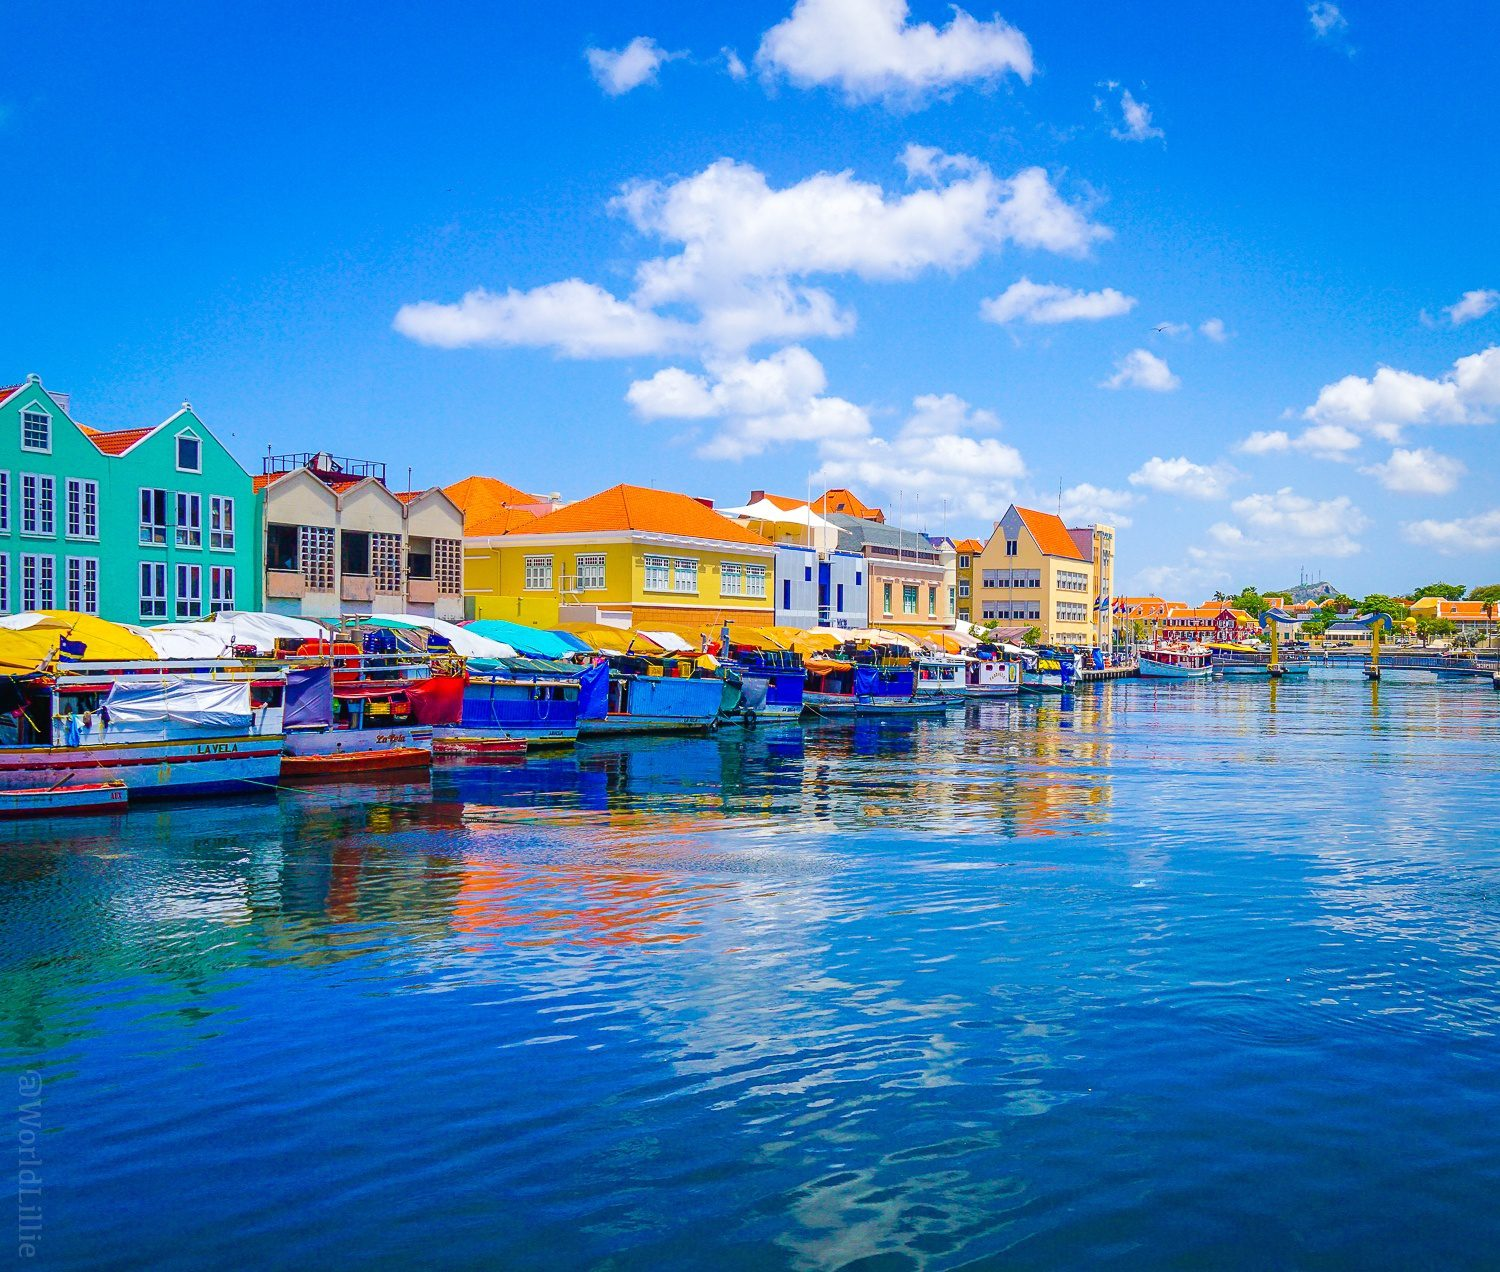 Willemstad, Curacao: Fishermen's boats reflect the water.